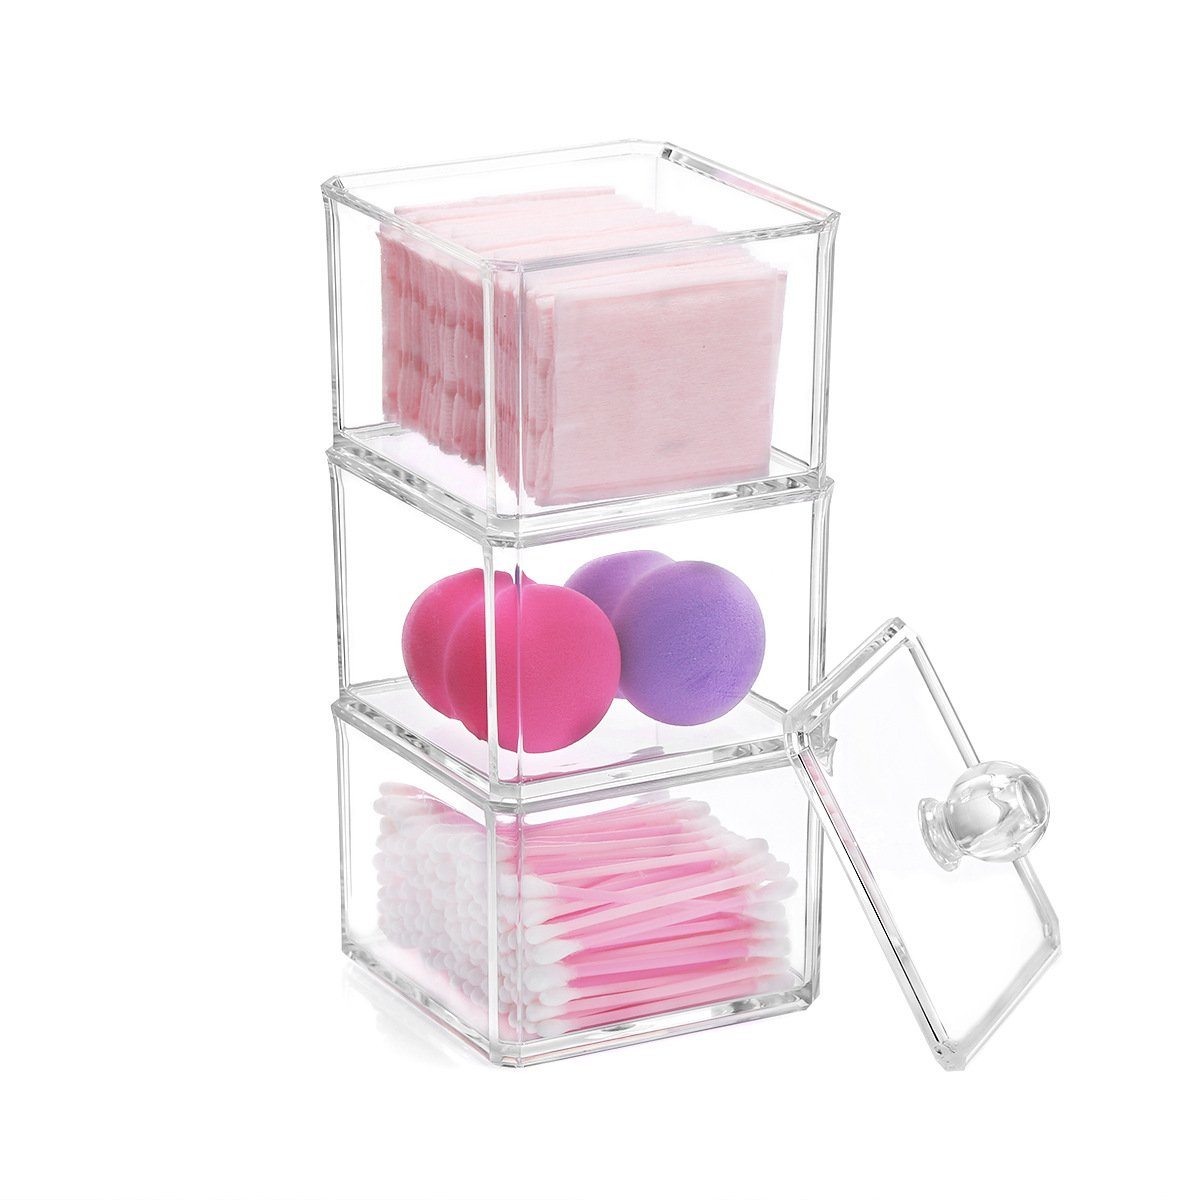 Amazon.com : Sooyee 9 Compartments Clear Acrylic Small